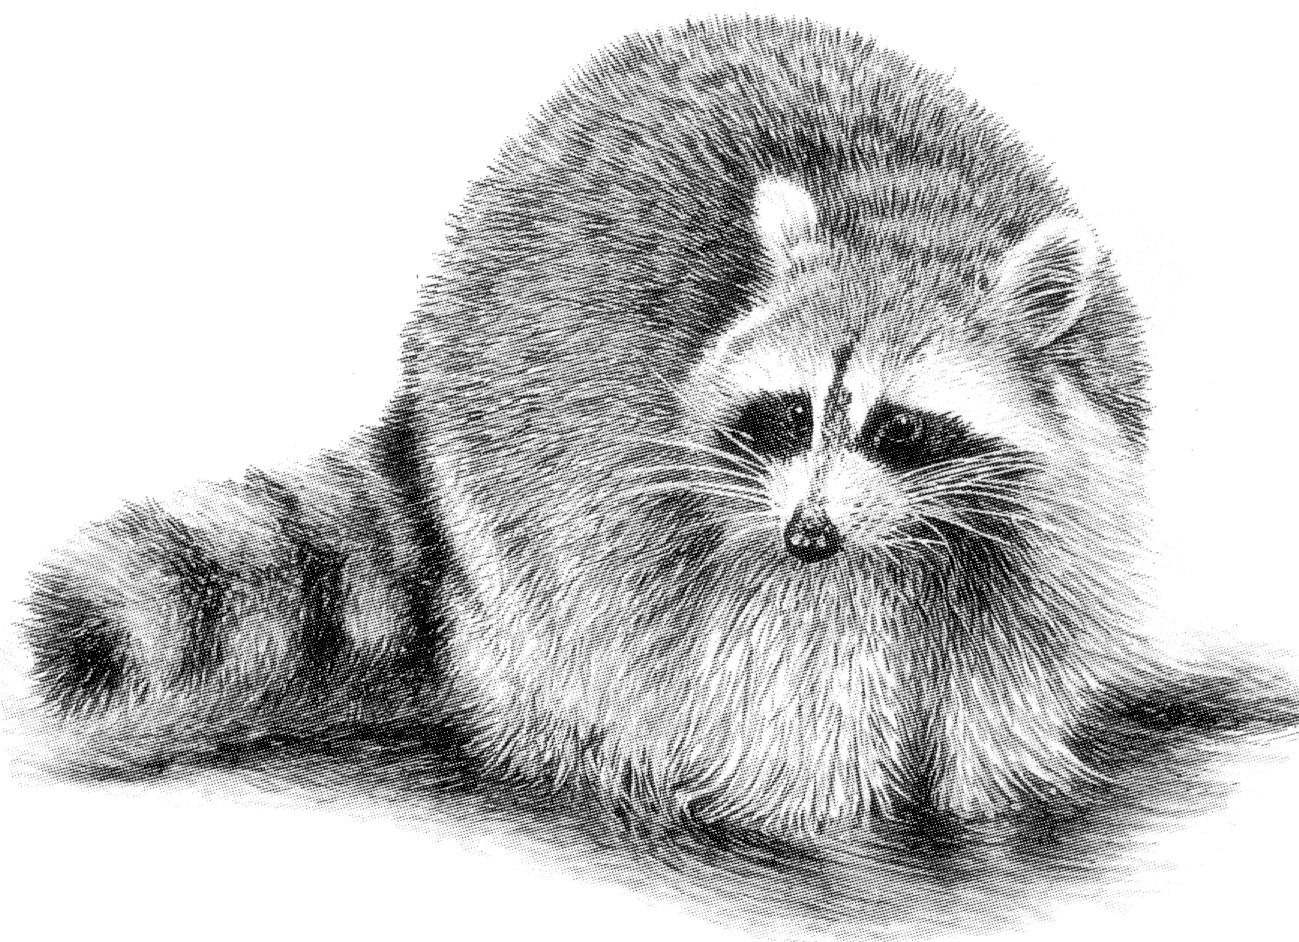 Drawn raccoon Drawing Is Book: Thesis My